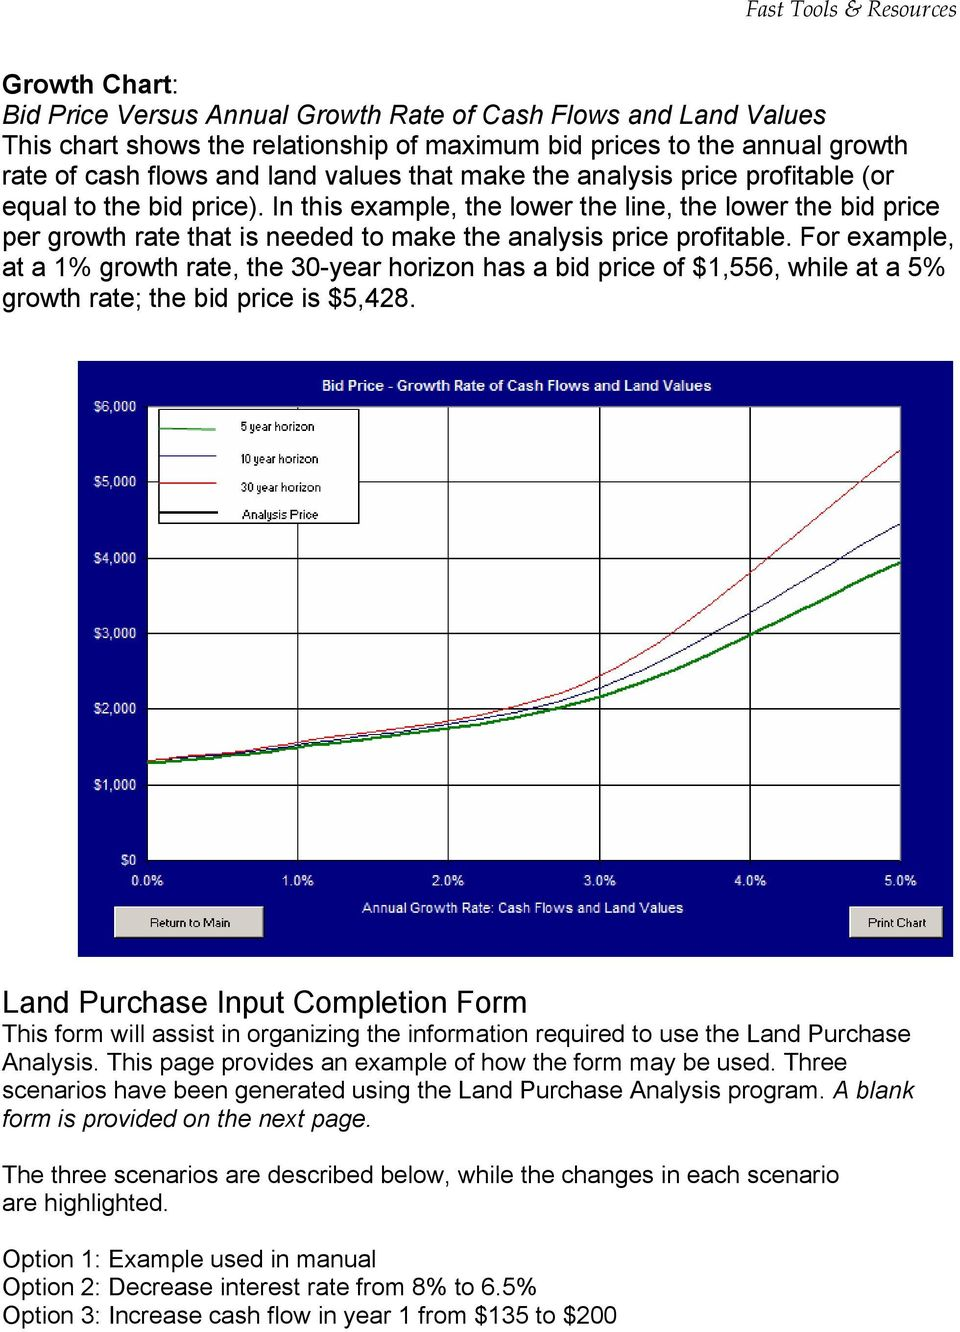 For example, at a 1% growth rate, the 30-year horizon has a bid price of $1,556, while at a 5% growth rate; the bid price is $5,428.